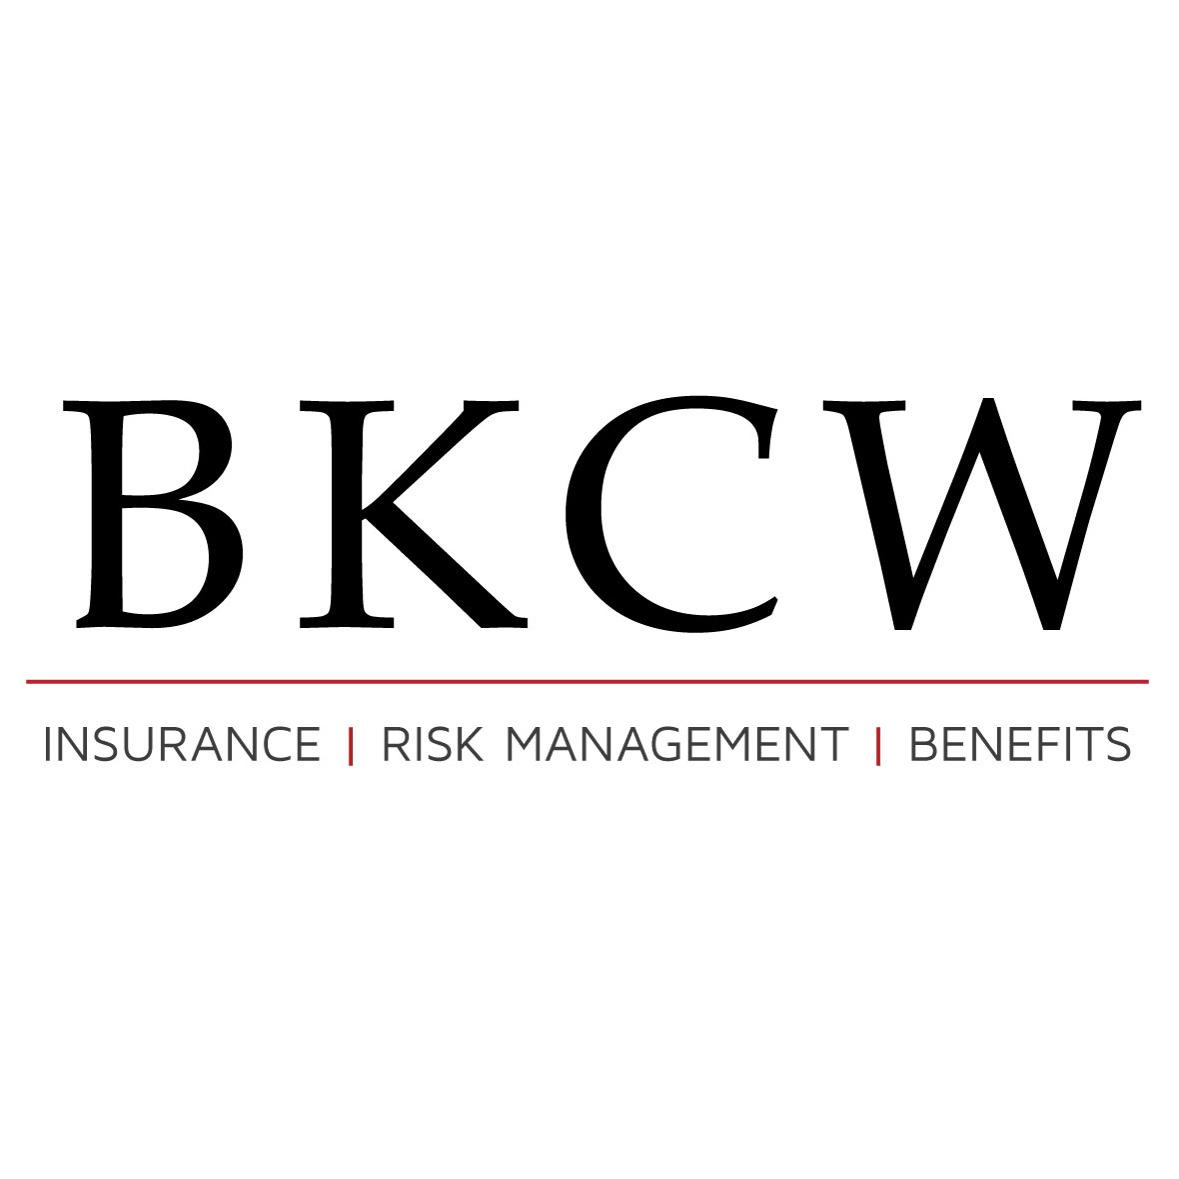 BKCW Insurance - Copperas Cove, TX - Insurance Agents